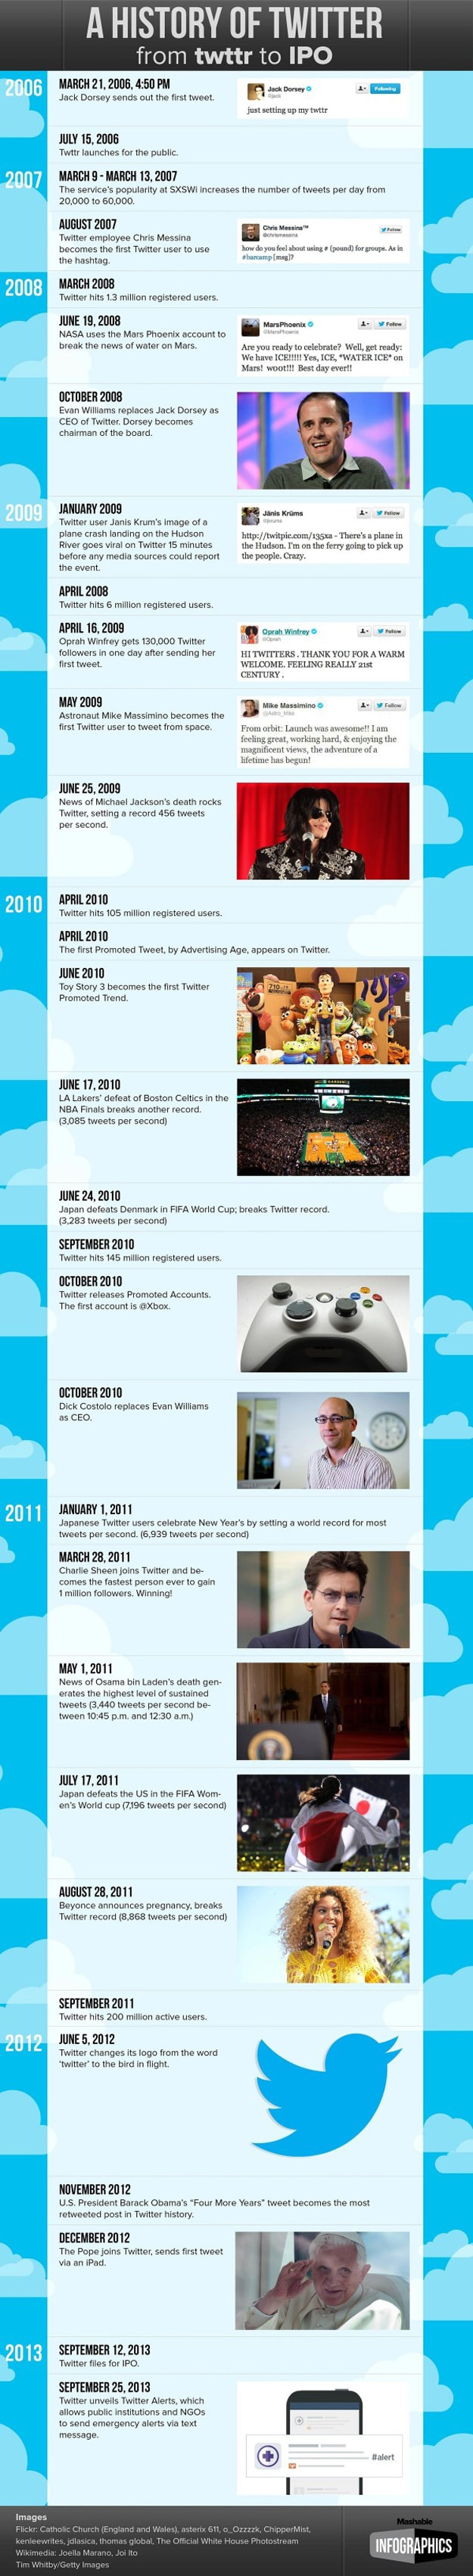 History Of Twitter From Twttr To IPO Is Full Of Memories [Infographic]